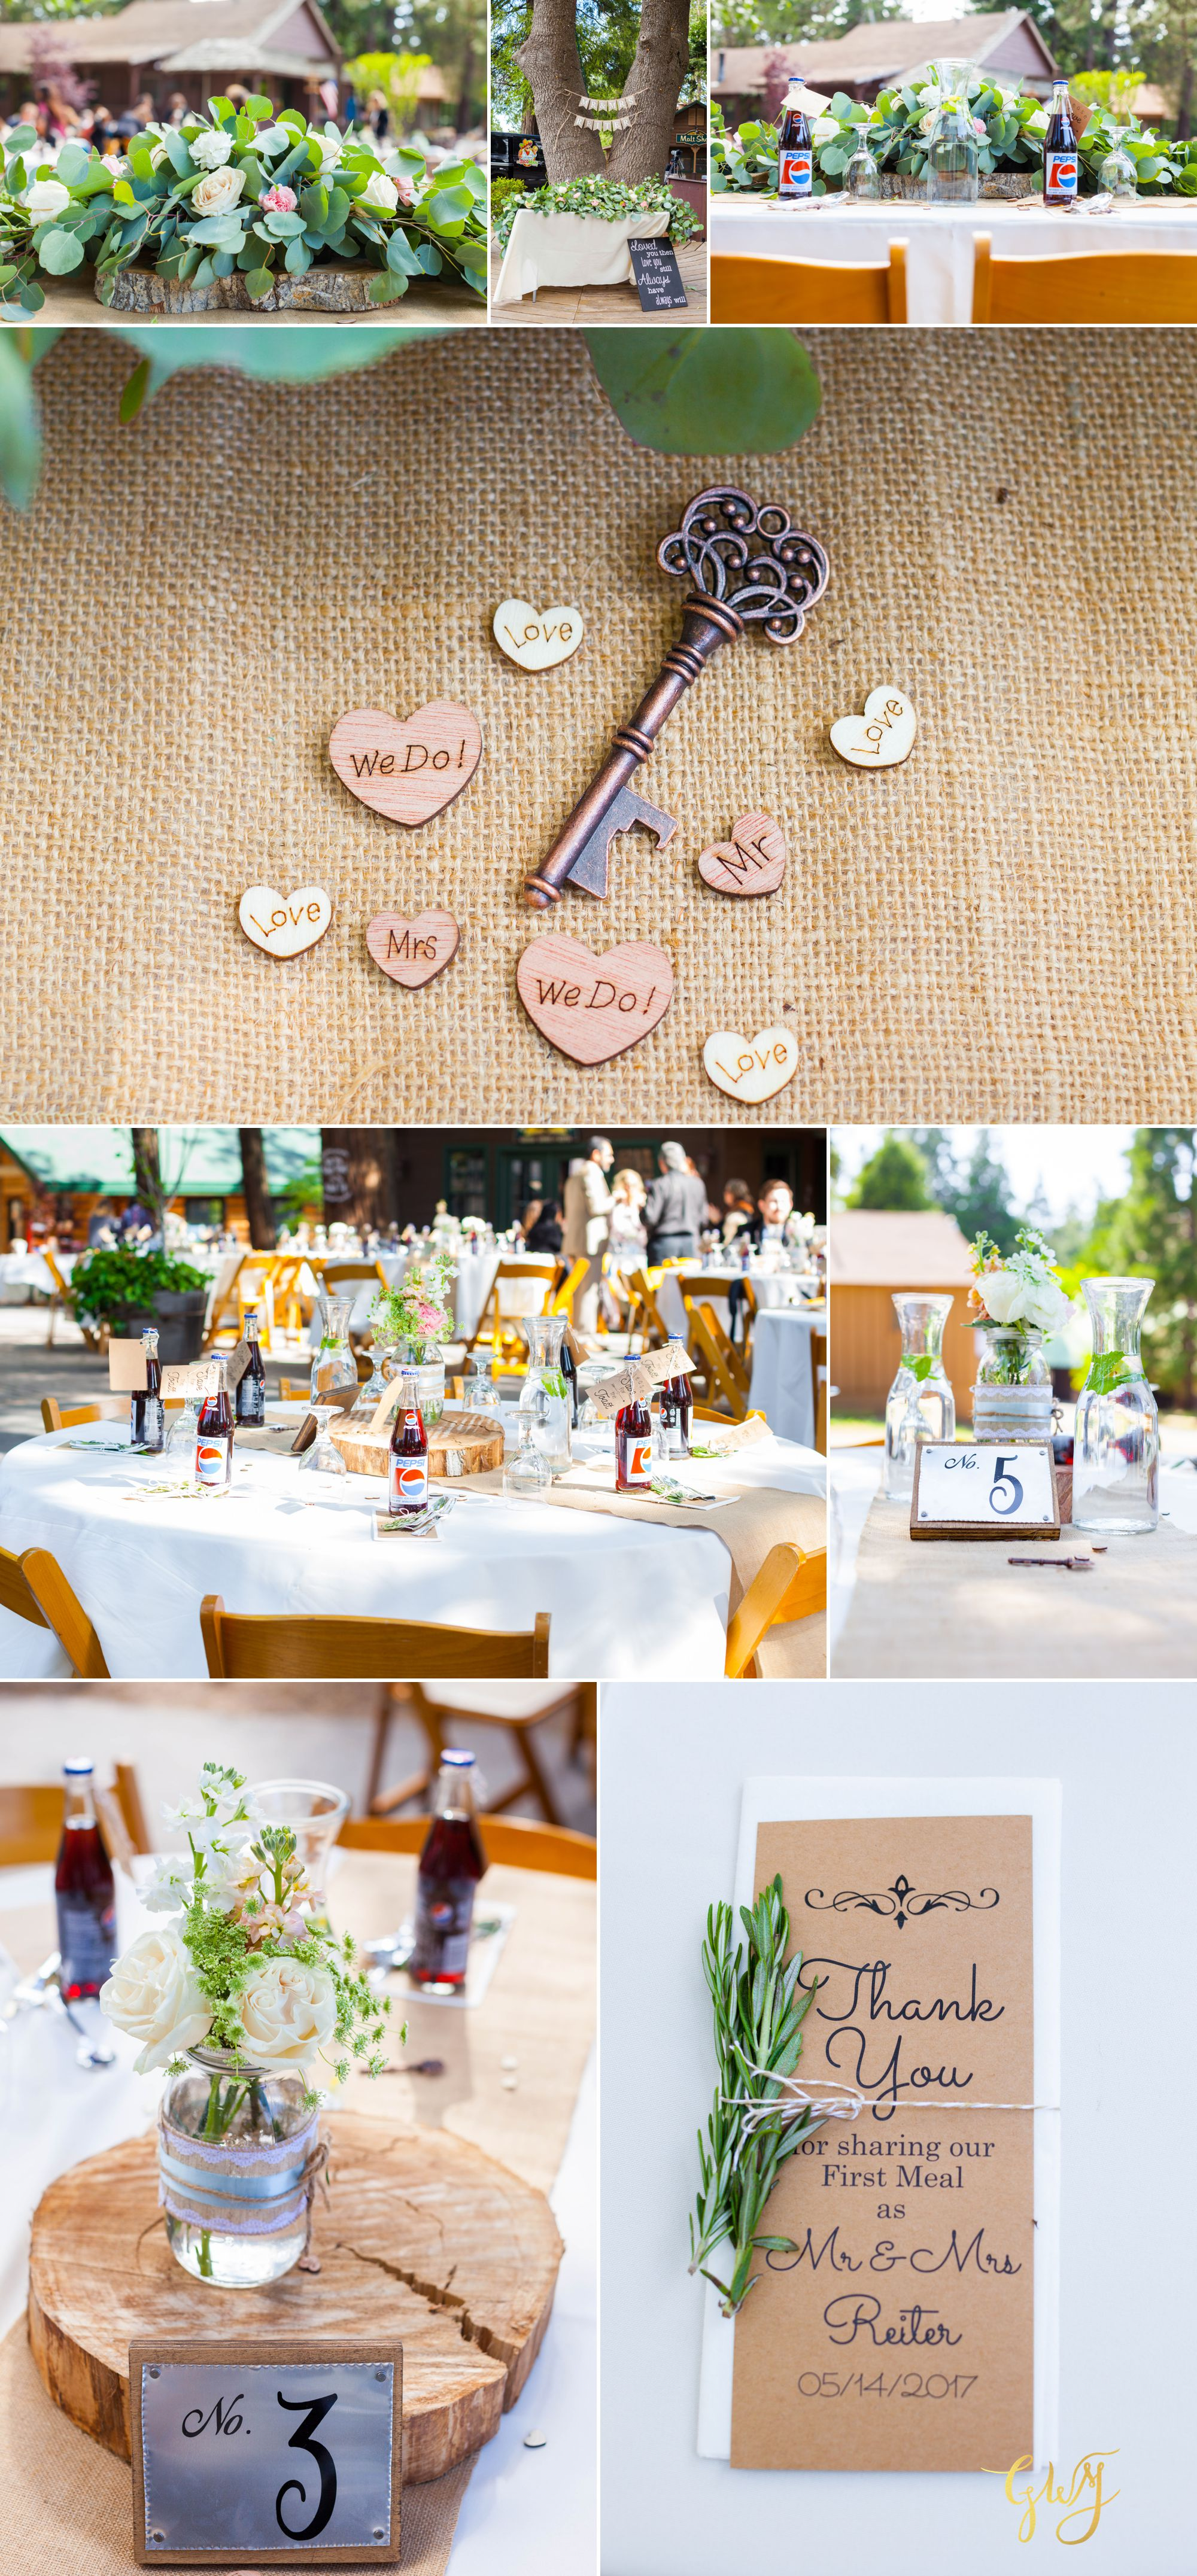 Allison + Jared Southern California Mountain Thousand Pines Christian Camp Wedding by Glass Woods Media 24.jpg